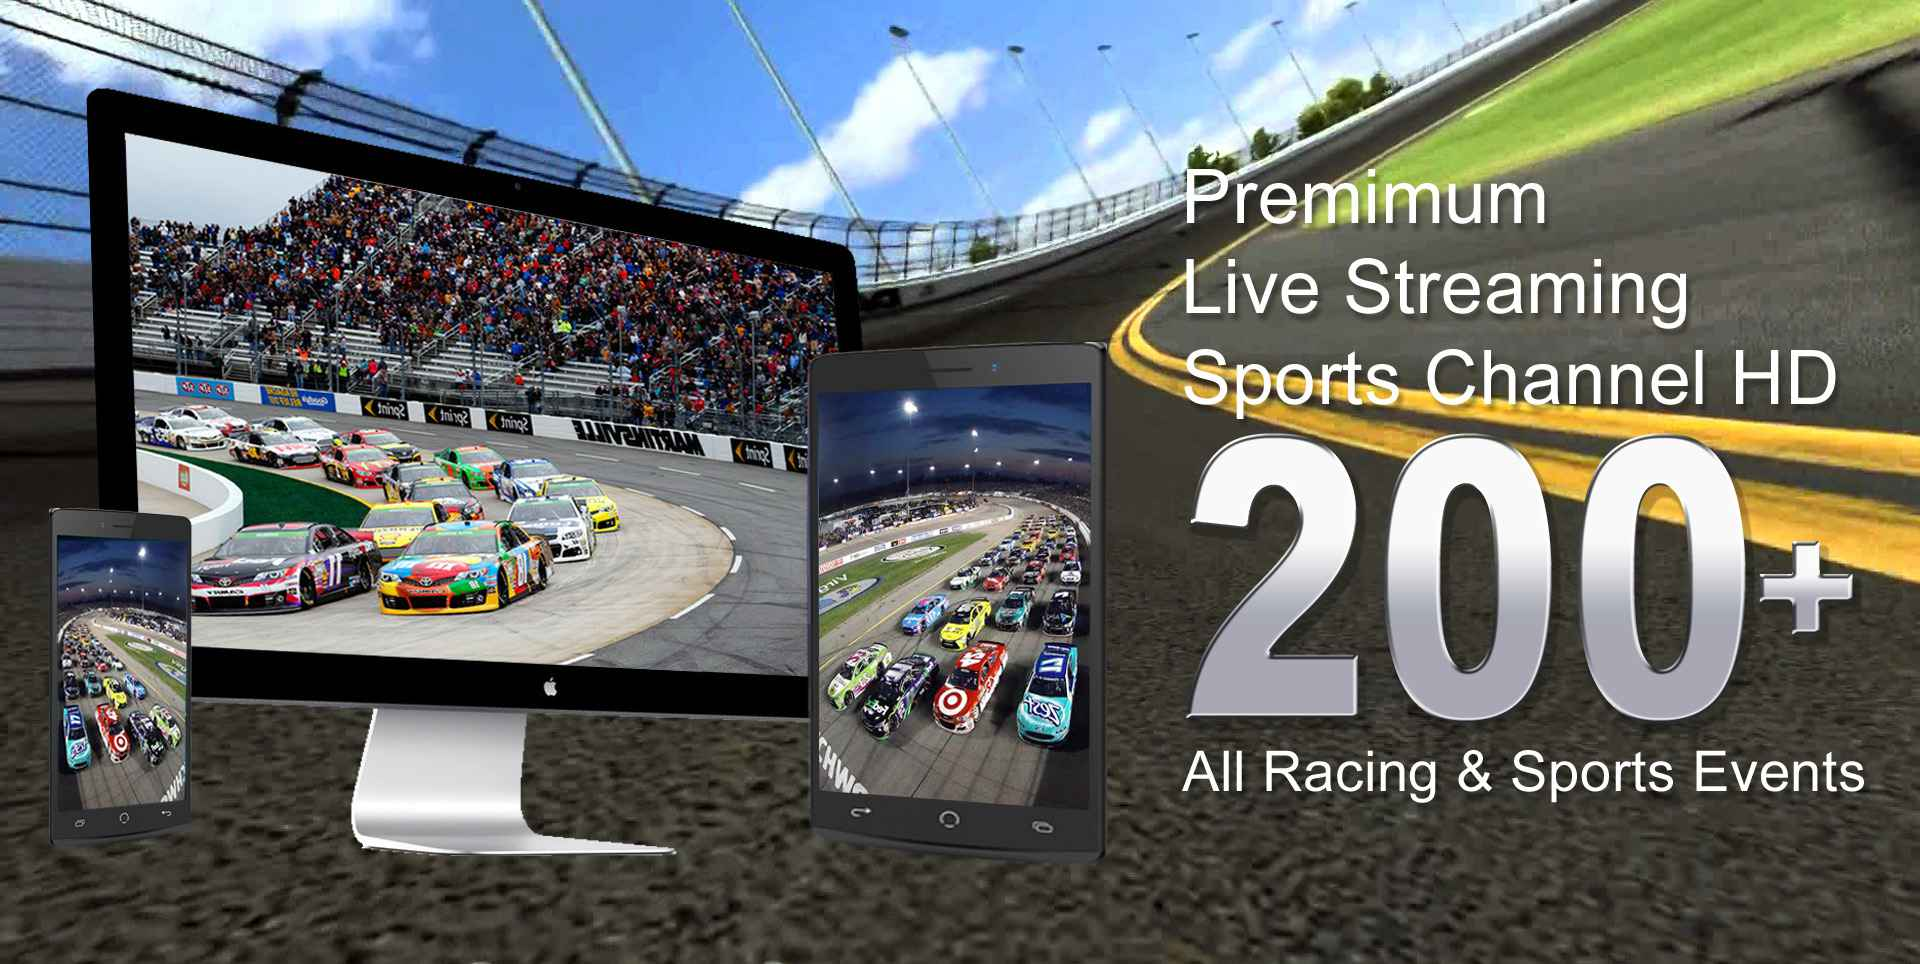 2016 NASCAR Sprint series New Hampshire 301